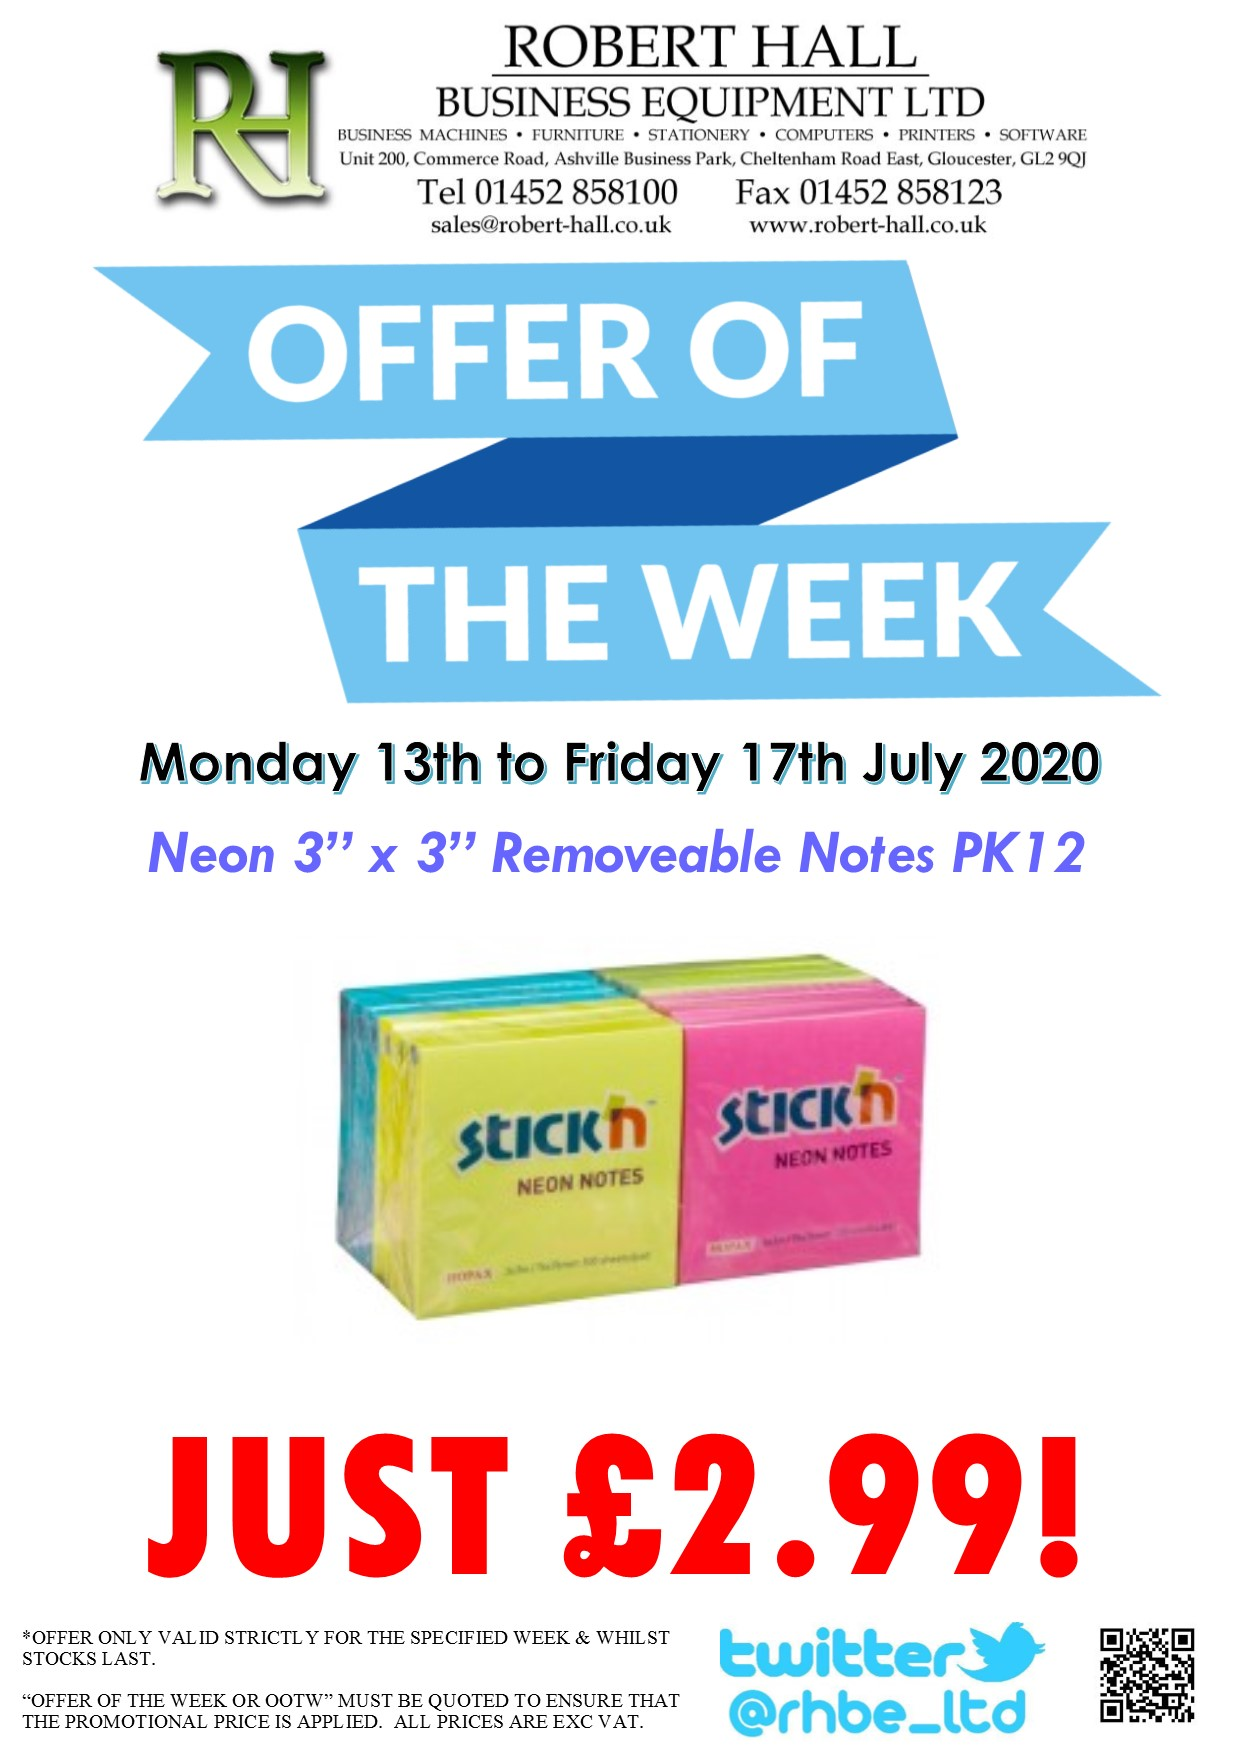 Neon 3x3 Removeable Notes PK12